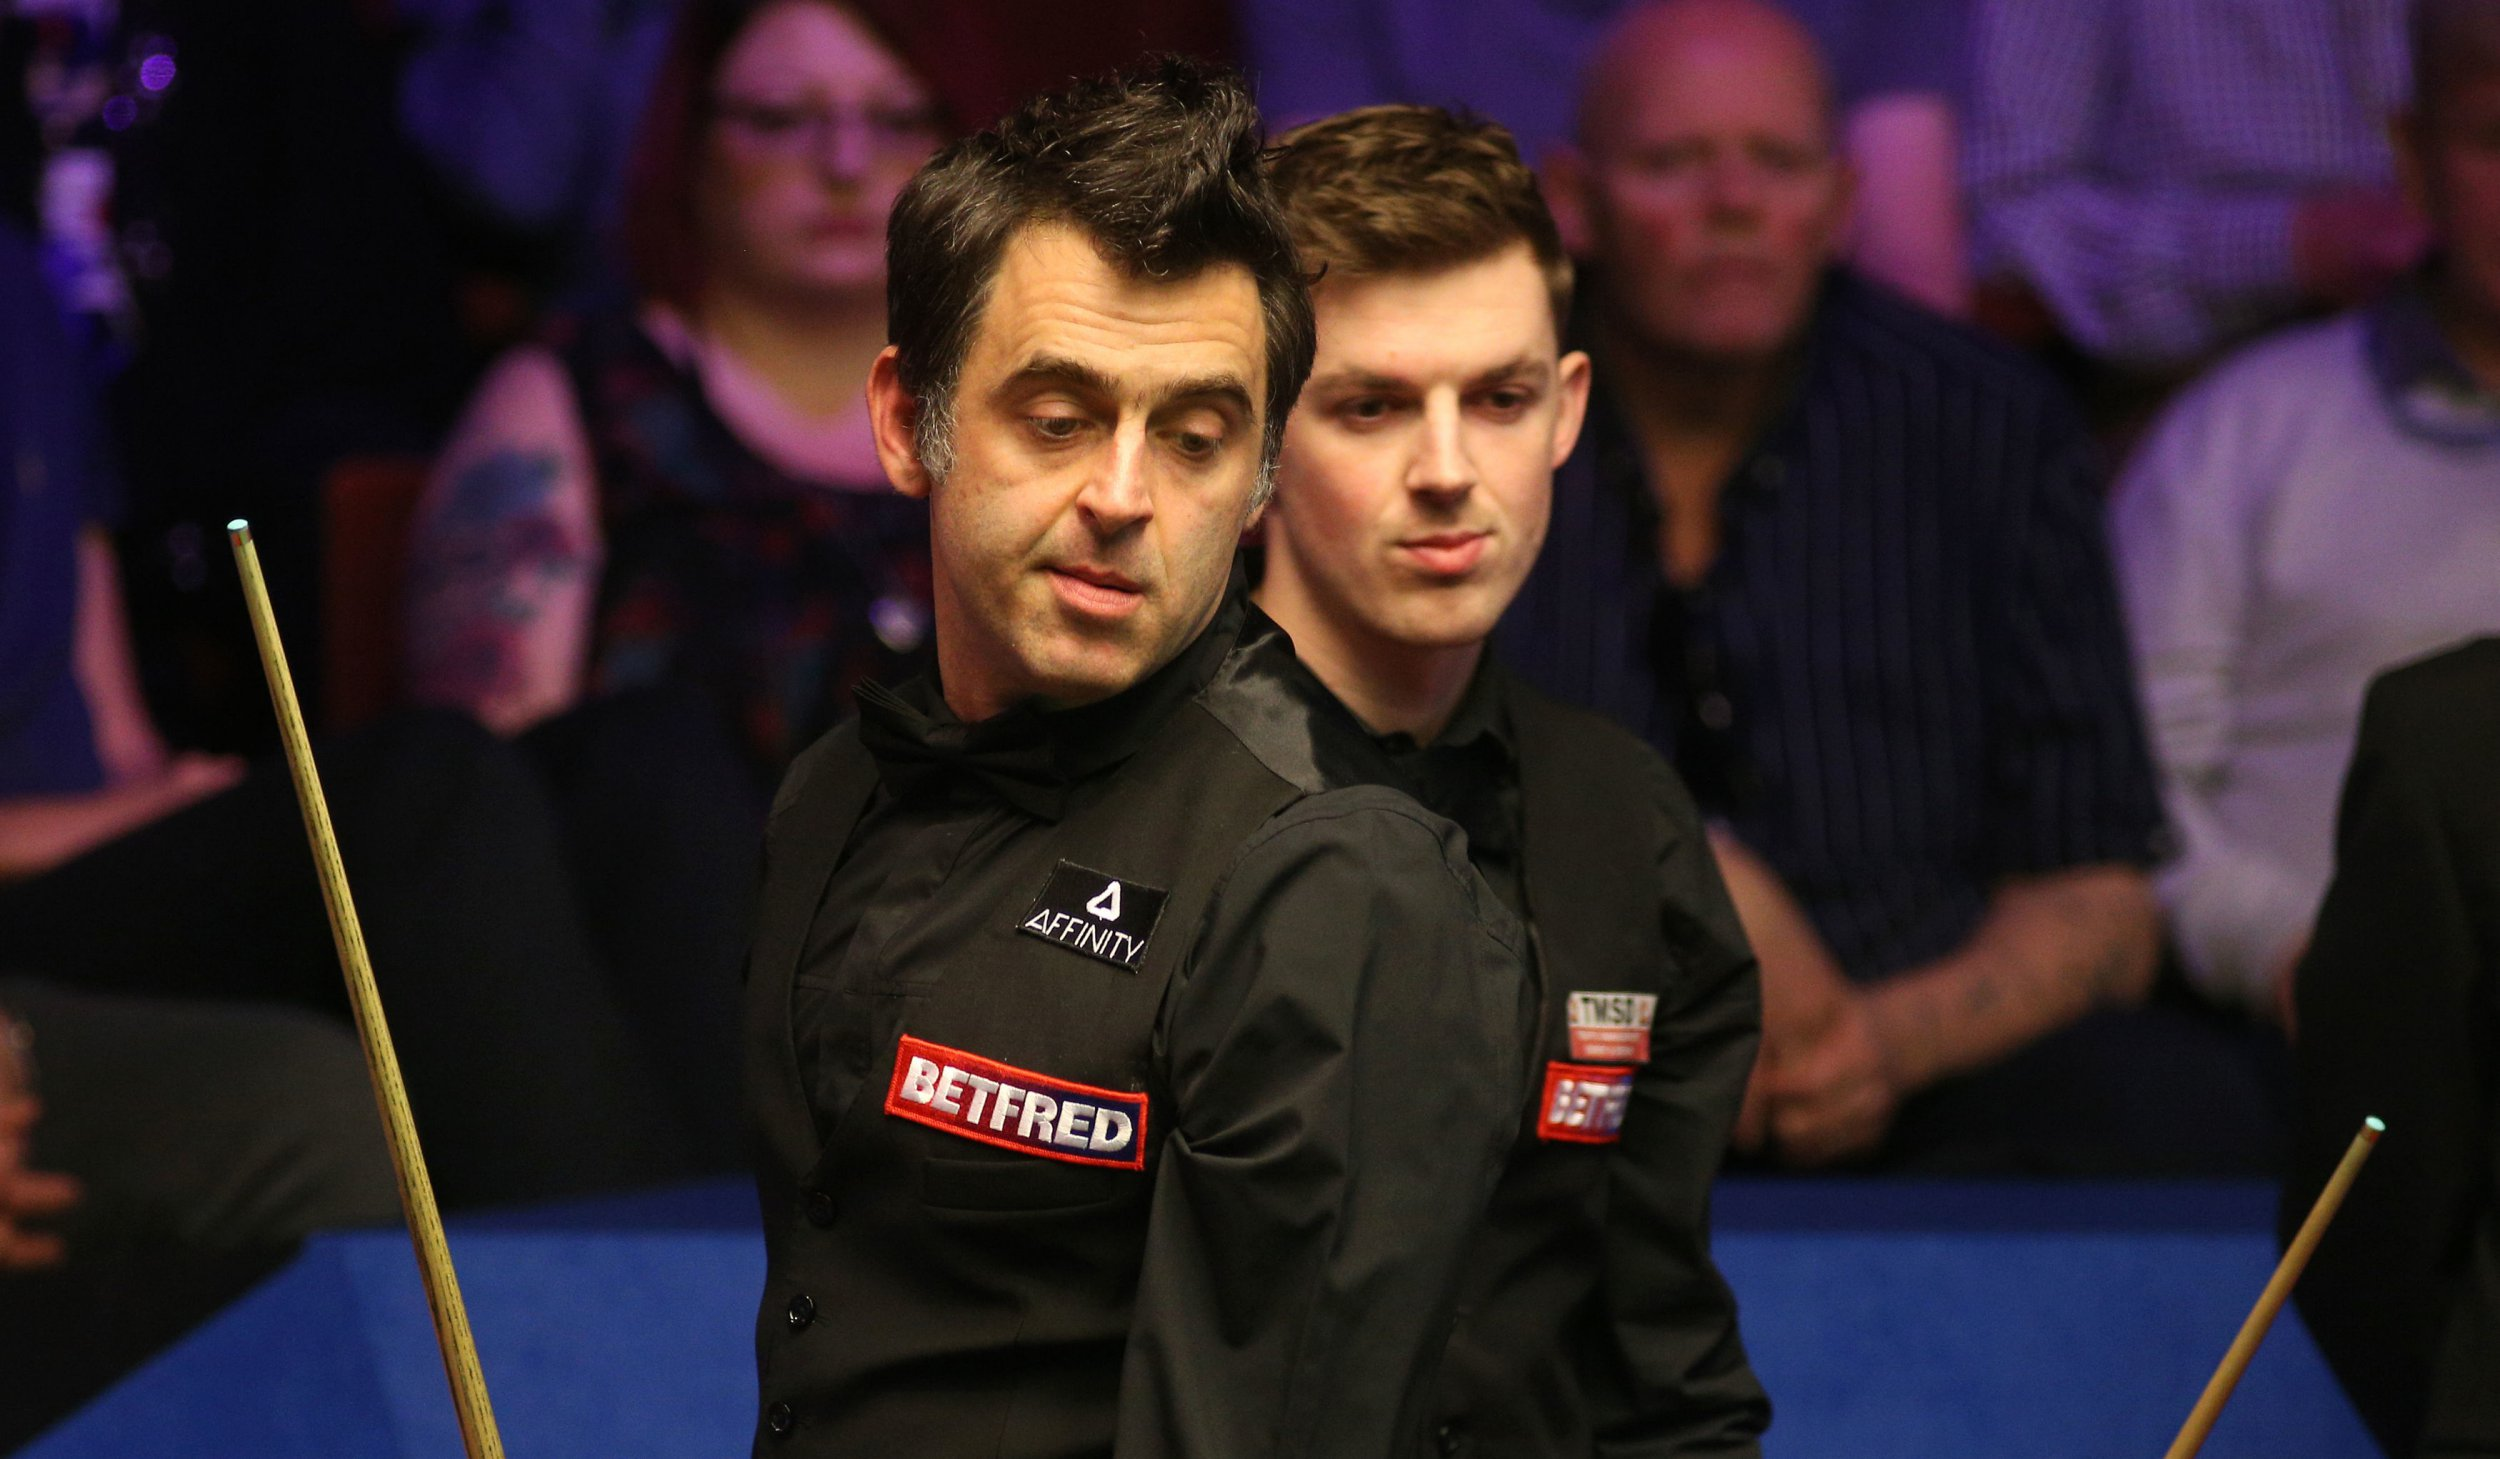 Ronnie O'Sullivan played his worst session of snooker all season against James Cahill, says Steve Davis